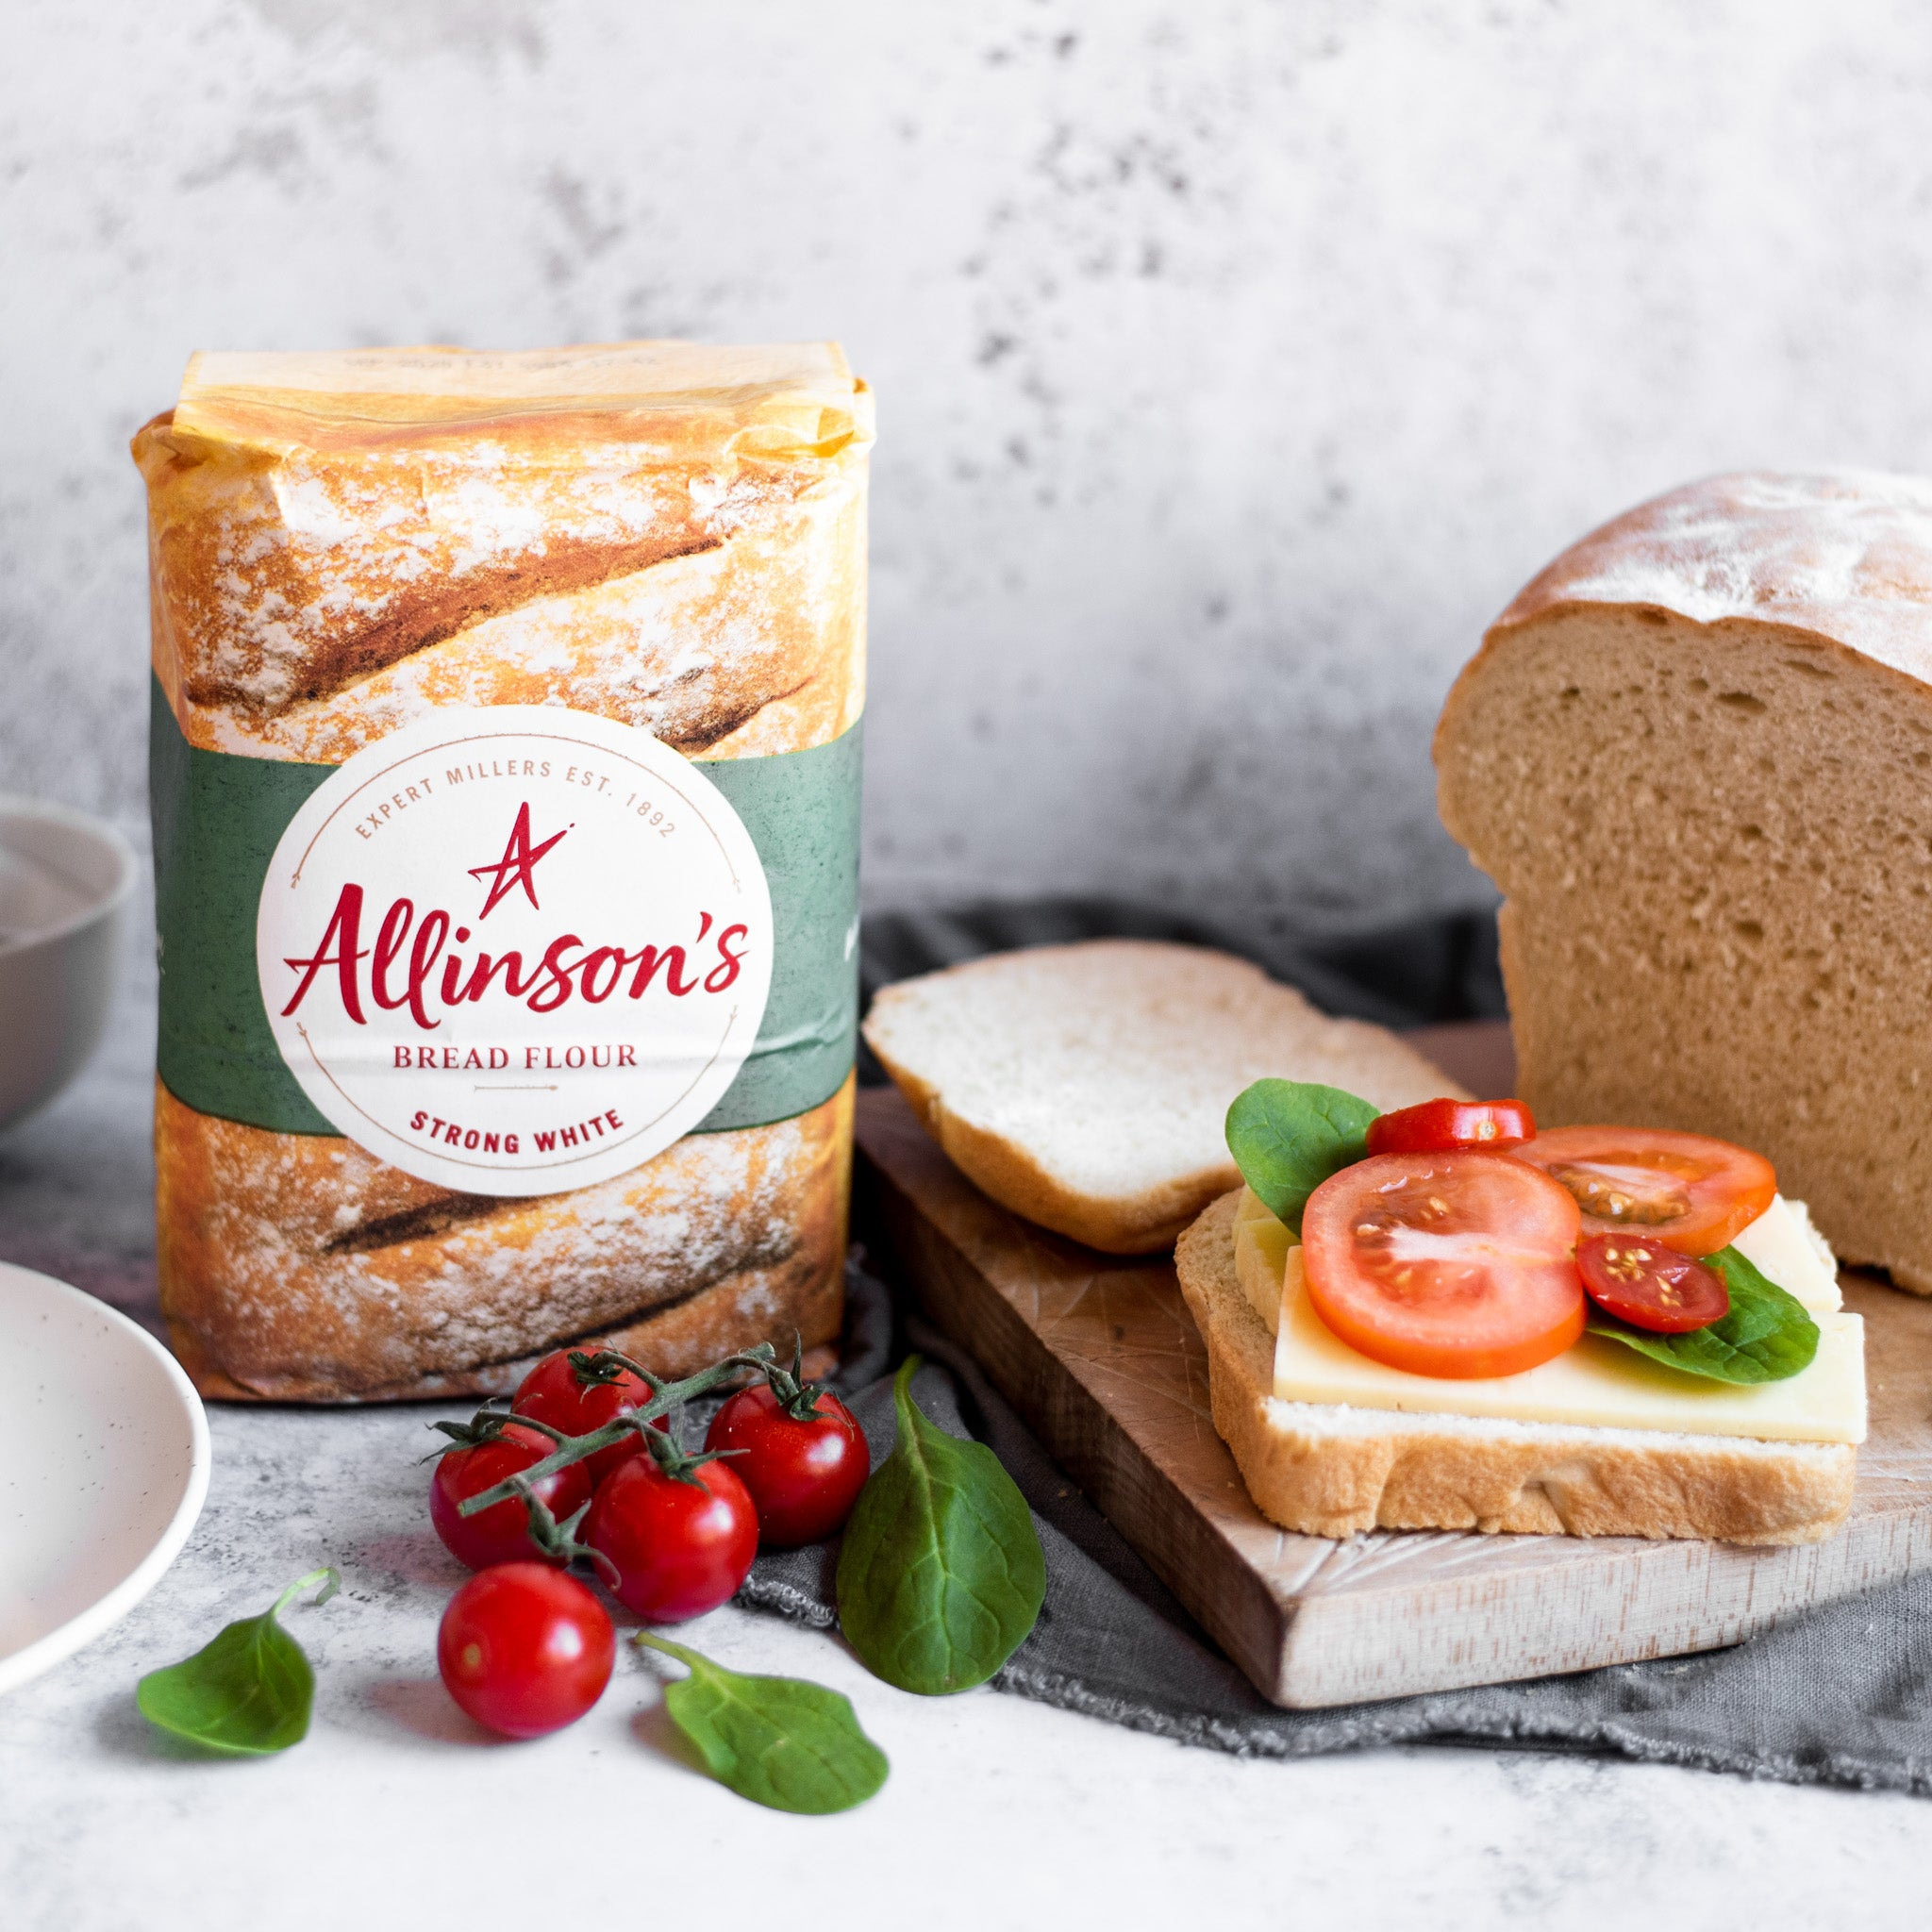 Allinsons-Crusty-White-Loaf-1-1-Baking-Mad-3.jpg